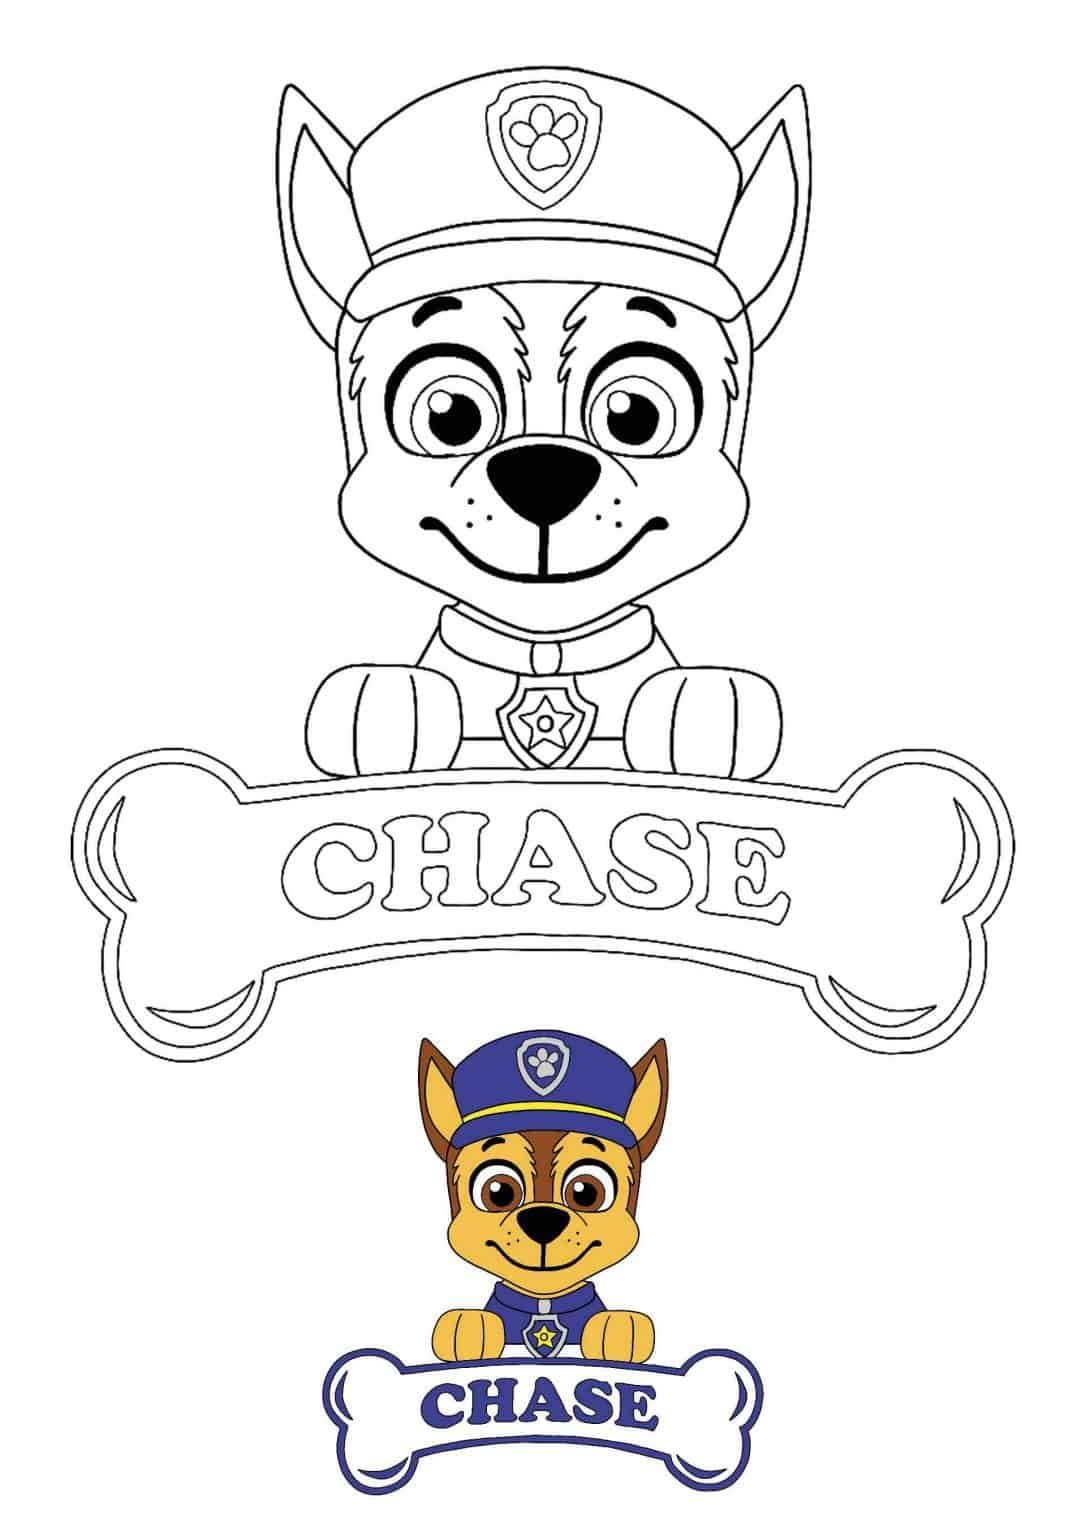 Paw Patrol Chase Coloring Pages 4 Free Printable Coloring Sheets 2020 Paw Patrol Coloring Pages Paw Patrol Coloring Chase Paw Patrol